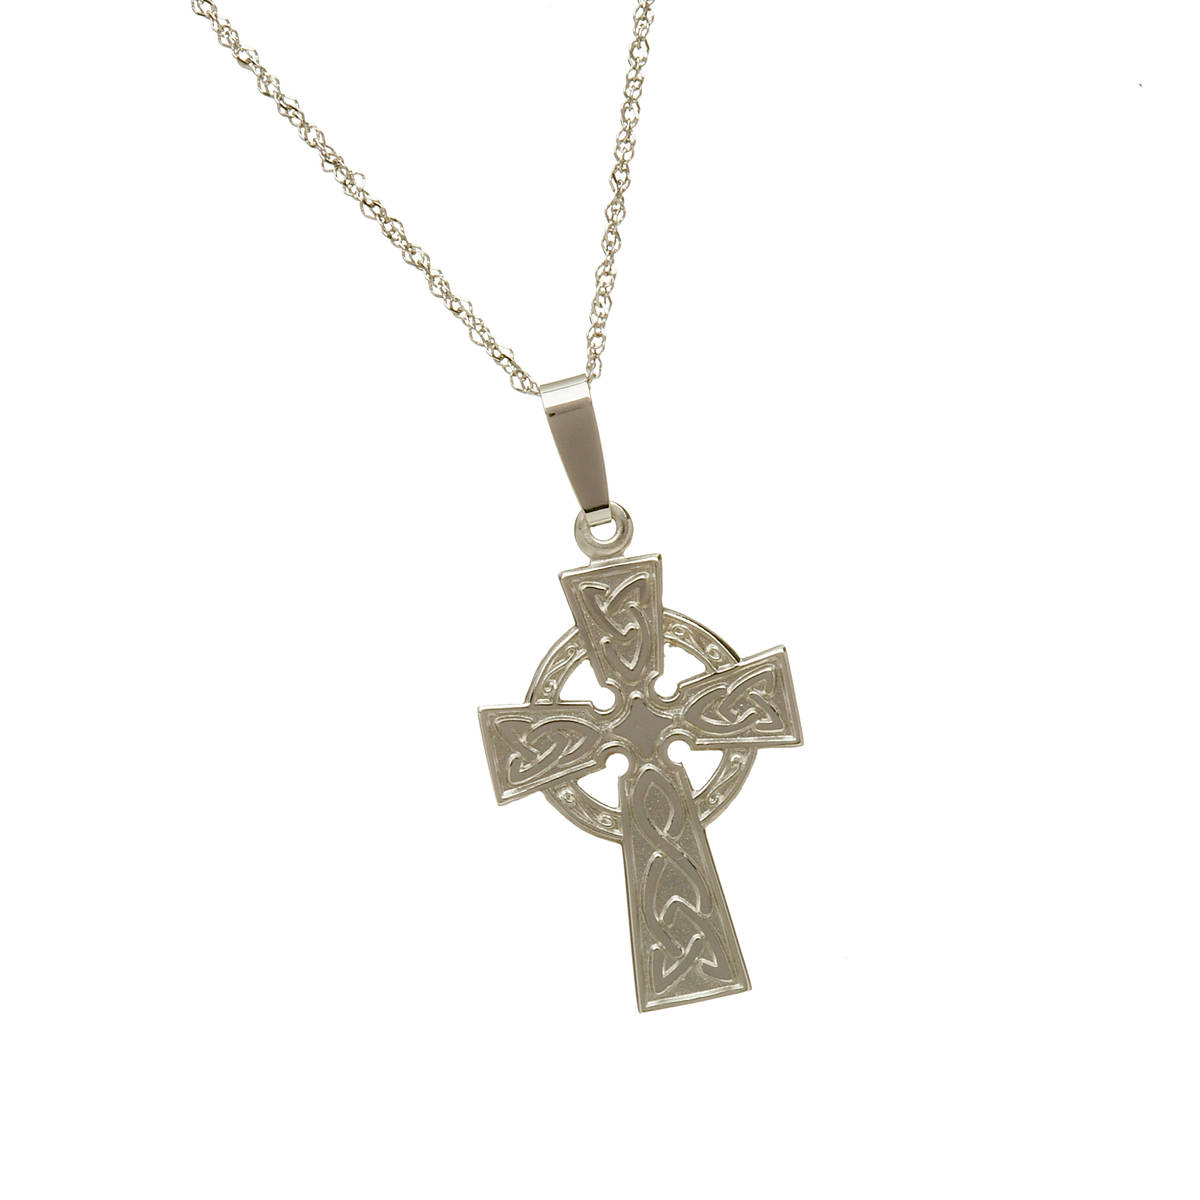 ""\n10 carat white gold celtic cross pendant engraved on back with 18""""chain.nThis pendant is on a Prince Of Wales solid rope chain.nIf you want this pendant in yellow gold or rose gold just leave a note to that effect in the comment box at the checkout.""1200|1200|?|en|2|196e10c869a6f2dacd21253752032d06|False|UNLIKELY|0.34713032841682434